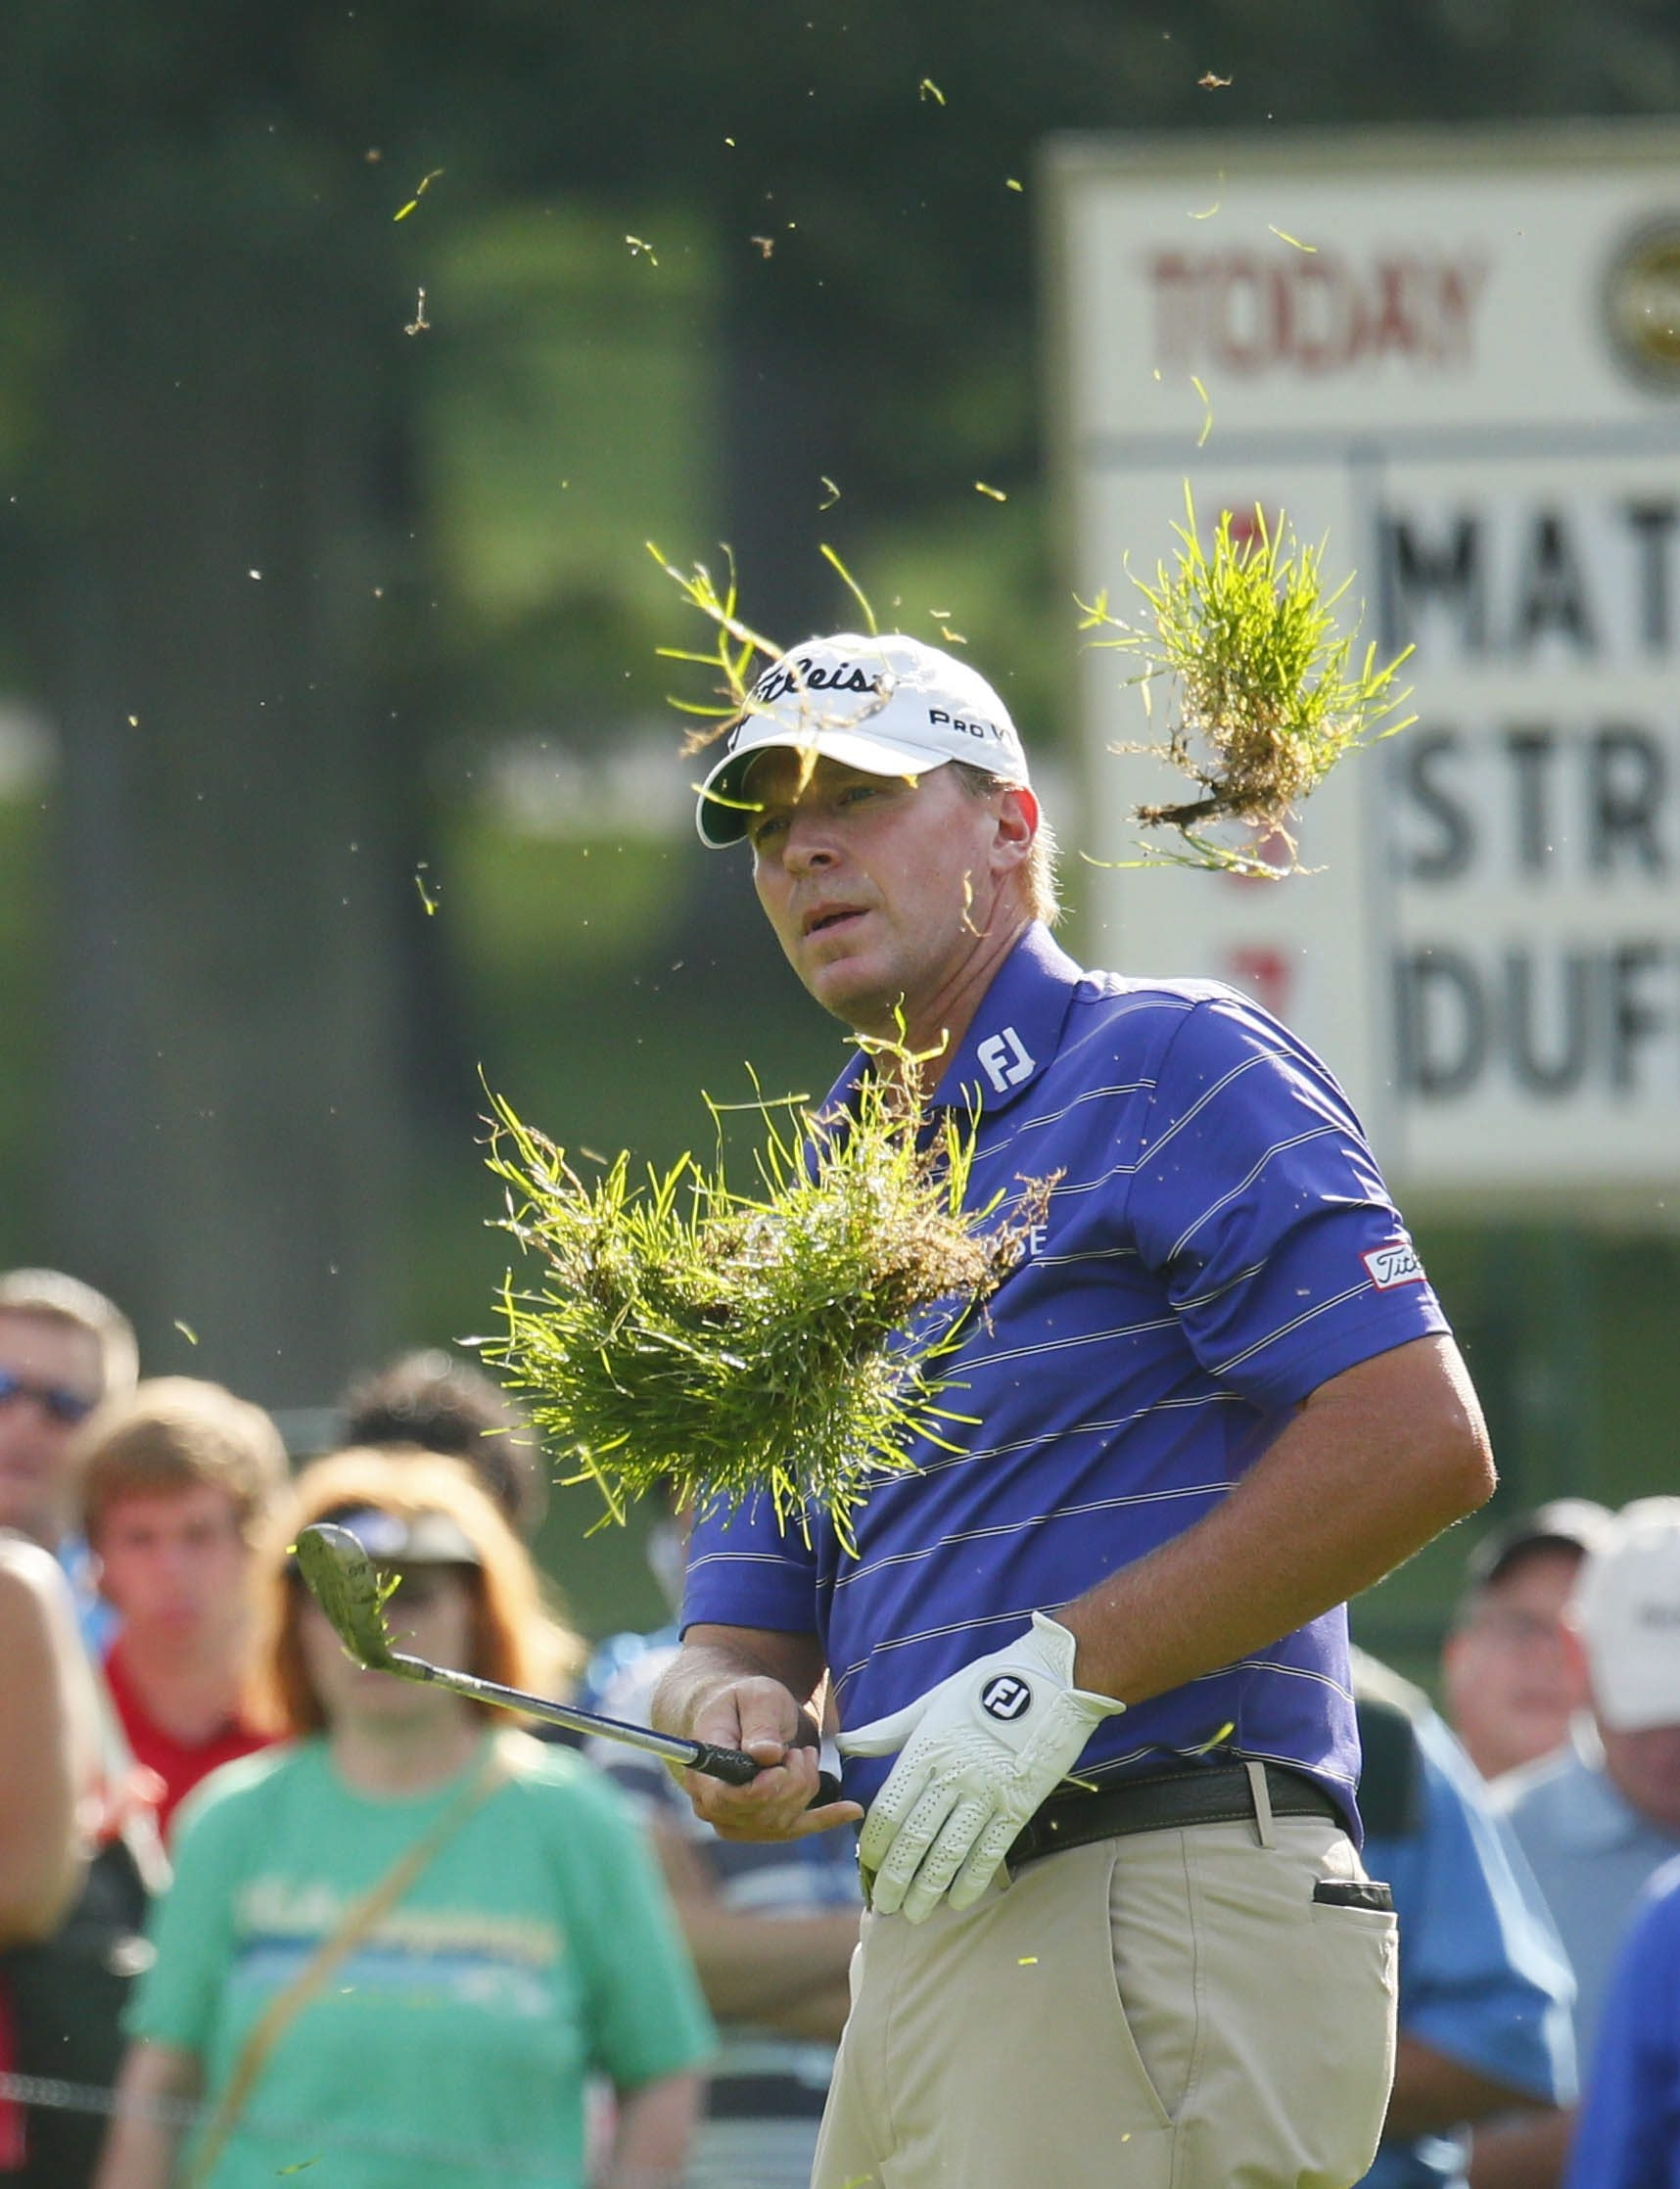 Steve Stricker kicks up a giant divot on his practice swing in the rough on No. 17 during the second round of the PGA Championship at Oak Hill.